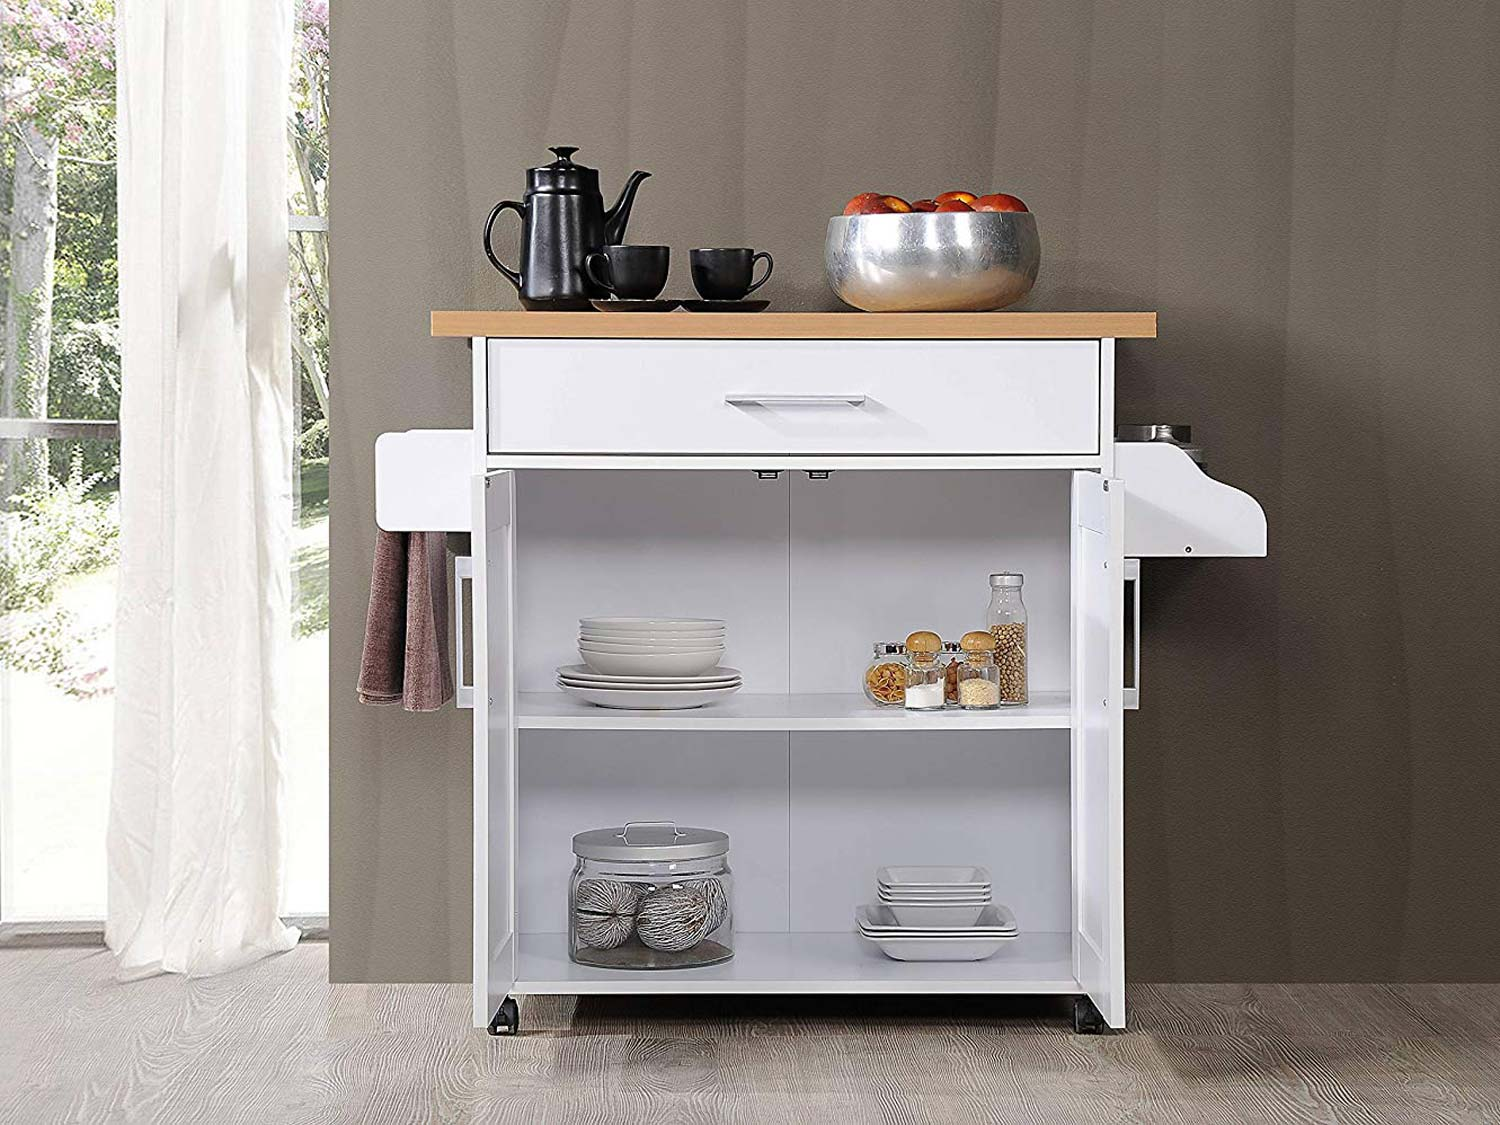 Hodedah Kitchen Island with Spice Rack, Towel Rack & Drawer, White with Beech Top